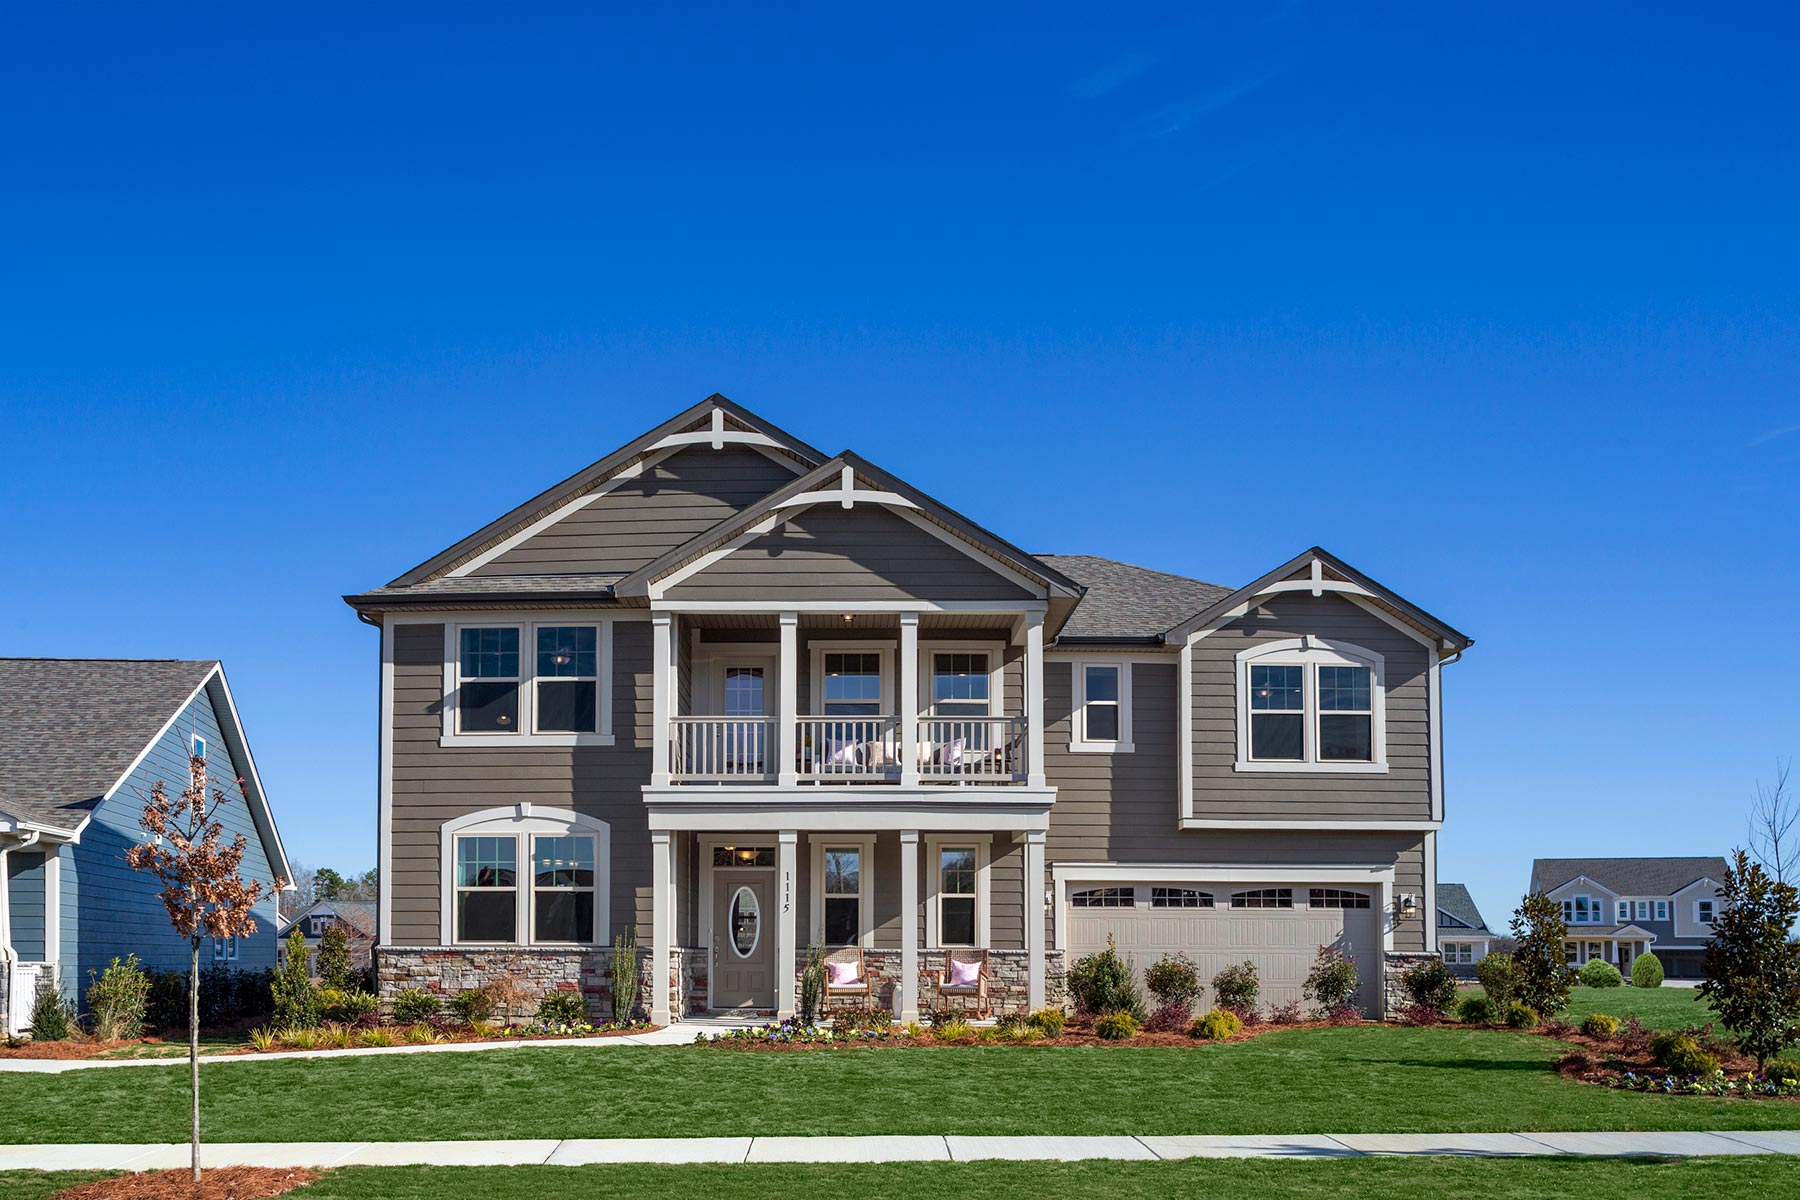 Braeburn Exterior Others in Indian Trail North Carolina by Mattamy Homes